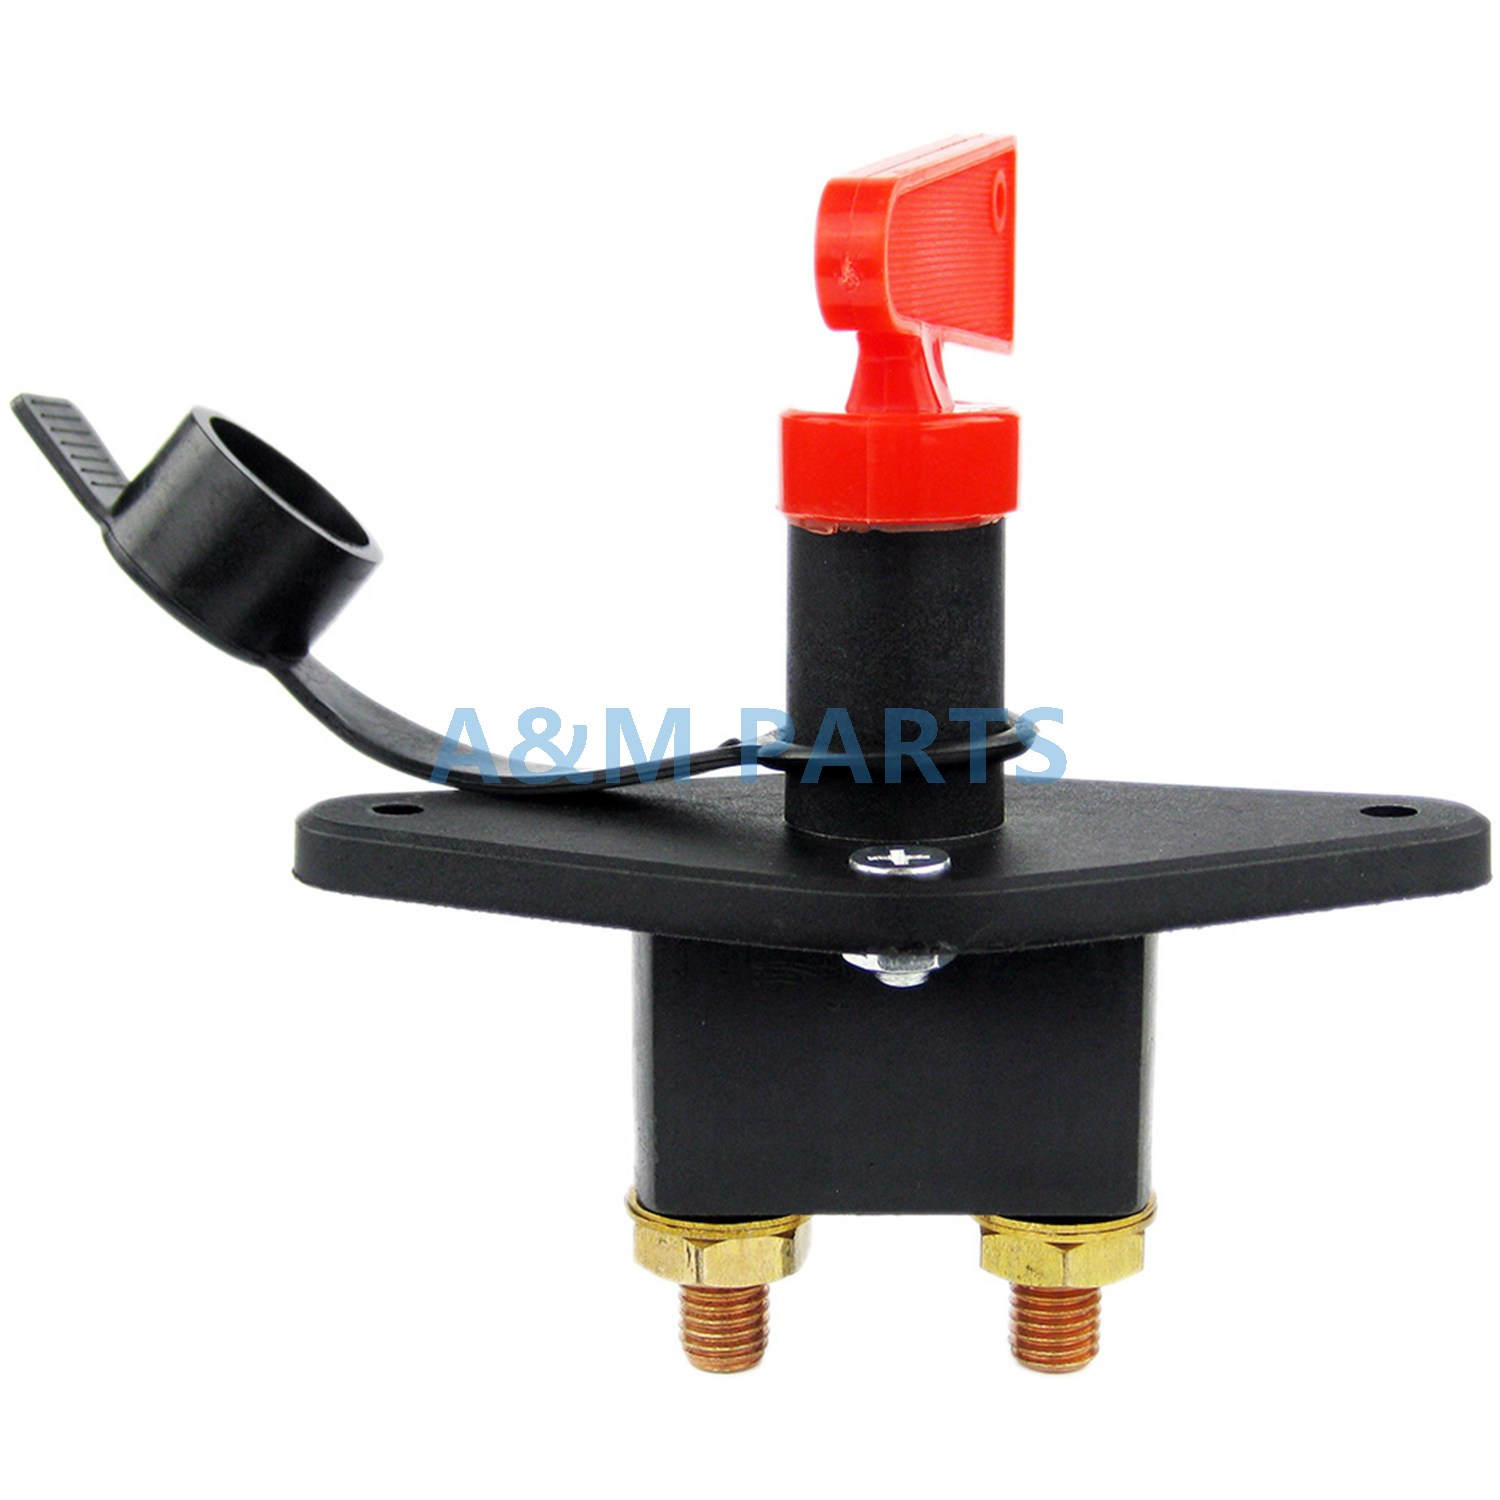 Battery Kill Switch >> Us 19 42 25 Off Battery Kill Switch Disconnect Cut Off Cutoff Switch Car Truck Brass Terminals In Car Switches Relays From Automobiles